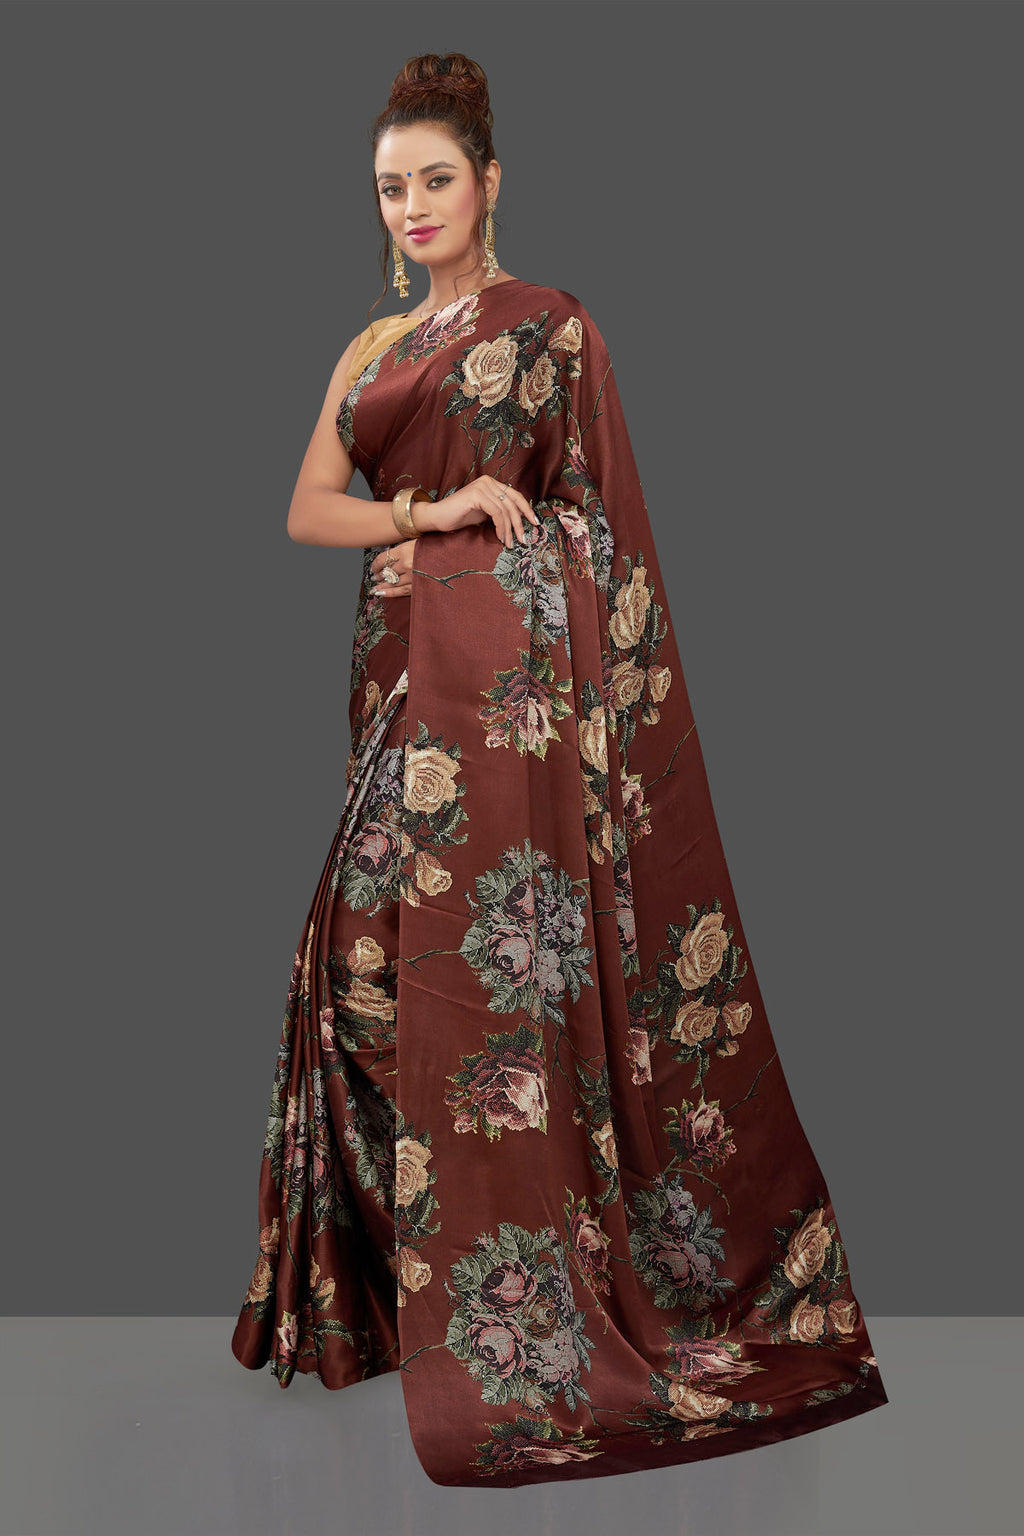 Buy gorgeous brown floral print crepe silk sari online in USA. Shop for weddings and special occasions stunning crepe sarees, printed saris, georgette sarees, designer sarees in USA from Pure Elegance Indian clothing store in USA. Shop online now.-full view